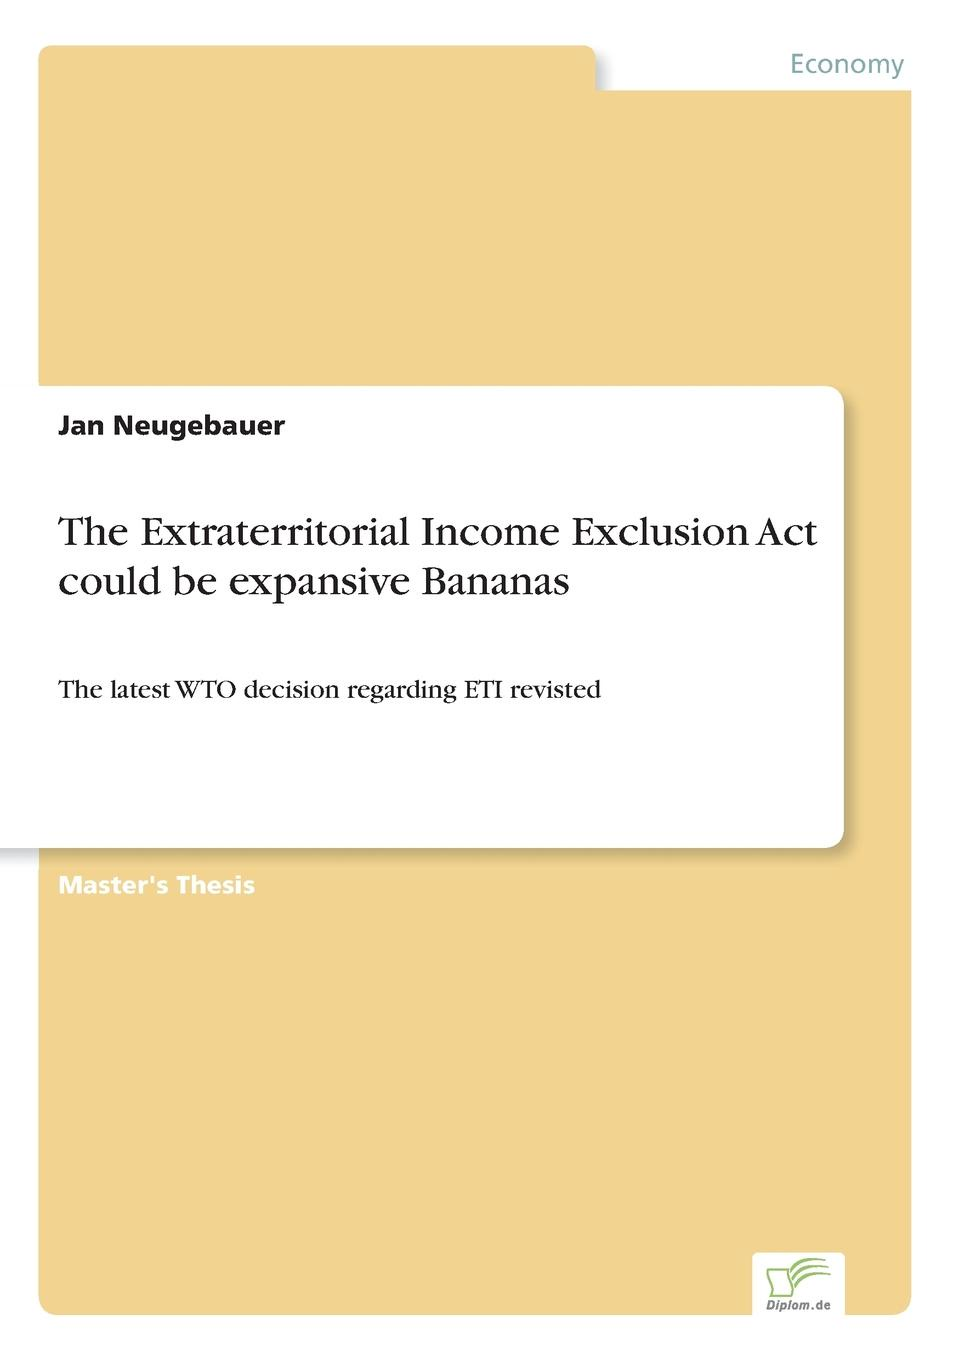 лучшая цена Jan Neugebauer The Extraterritorial Income Exclusion Act could be expansive Bananas